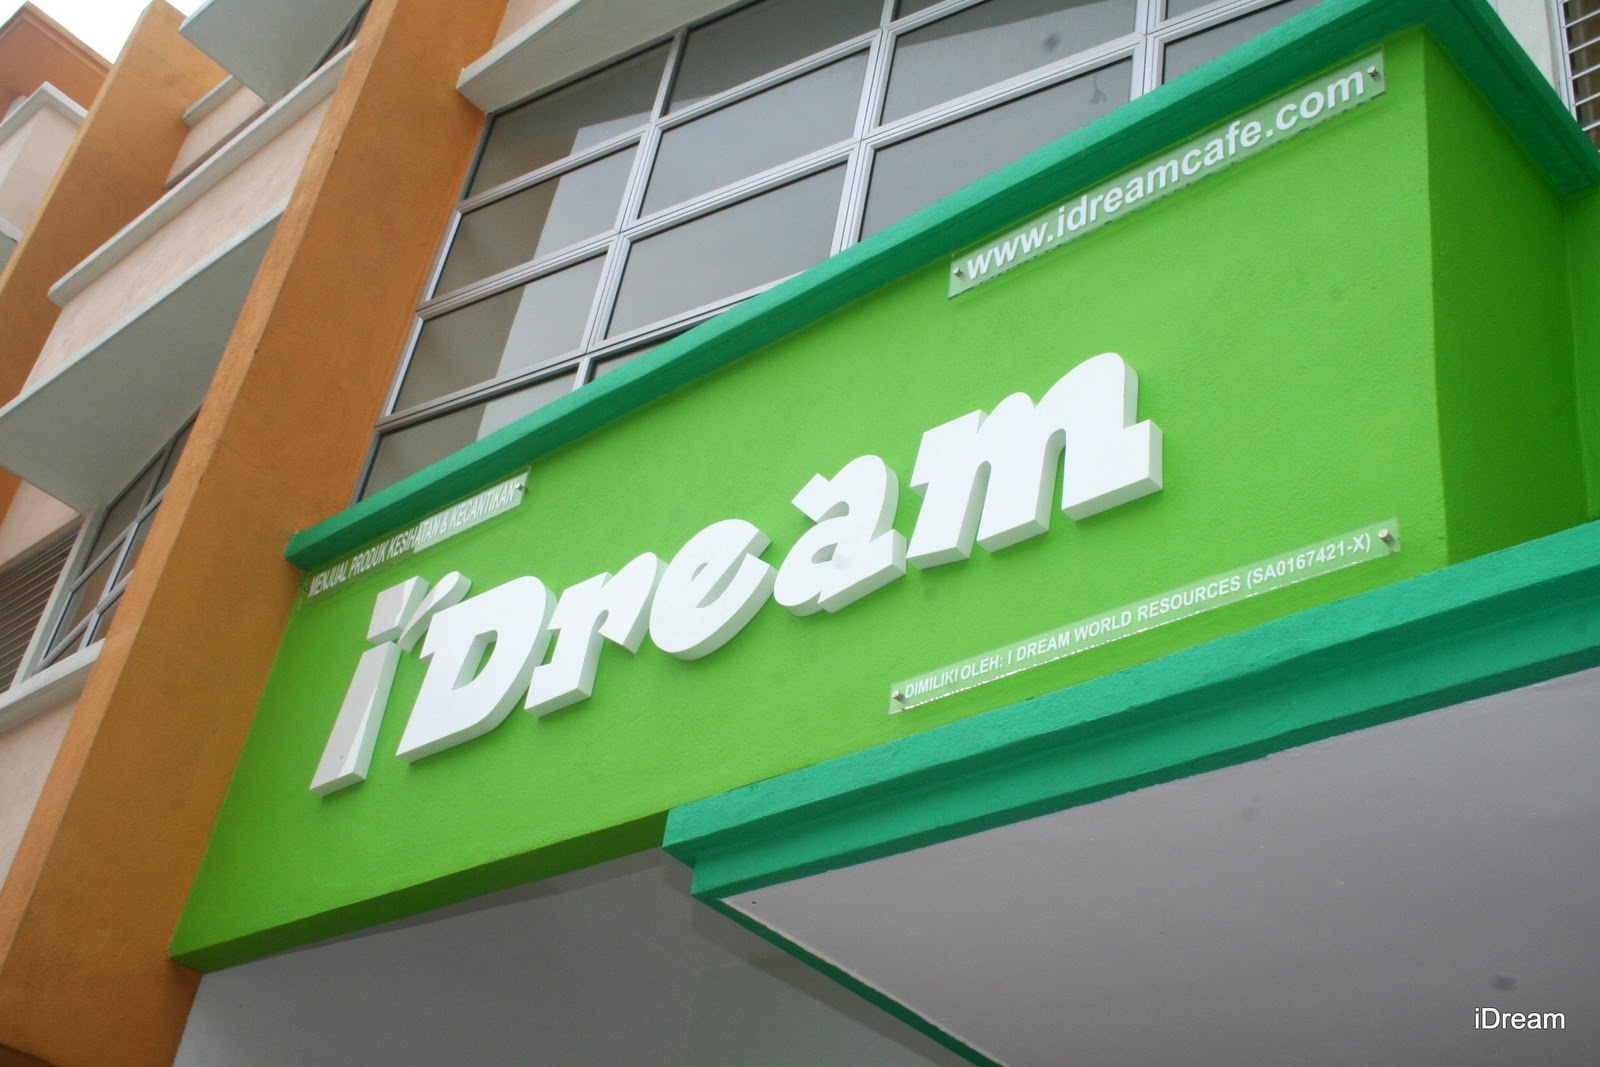 Herbalife Klang iDream Cafe - A Wellness Nutrition and Weight Loss ...